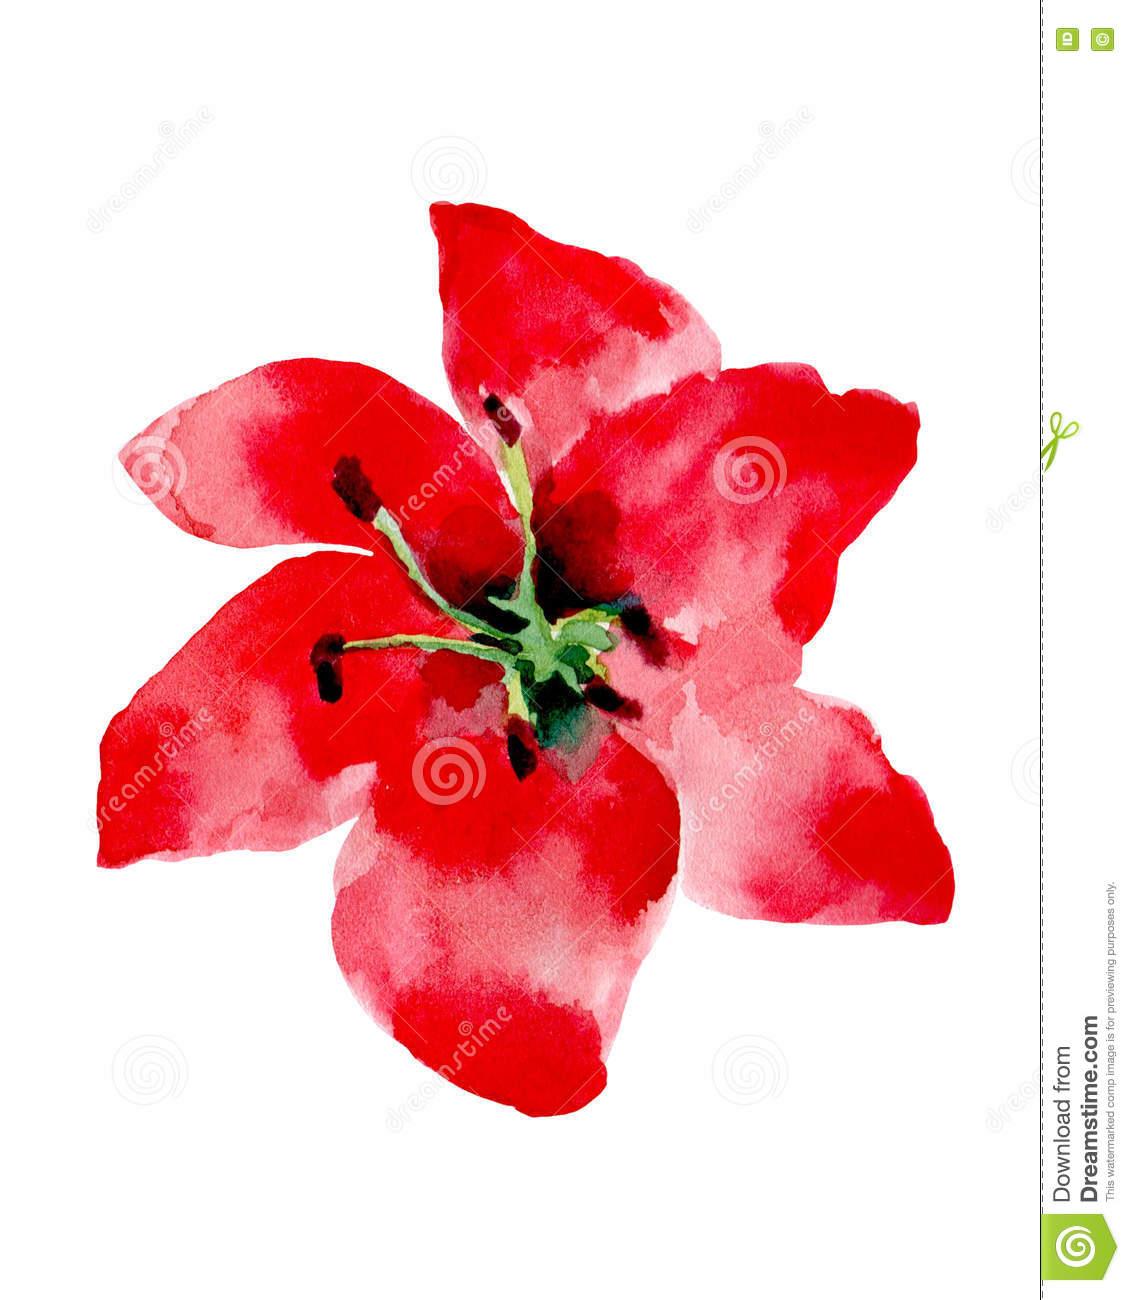 Watercolor Illustration Of A Red Flower On A White Background Stock